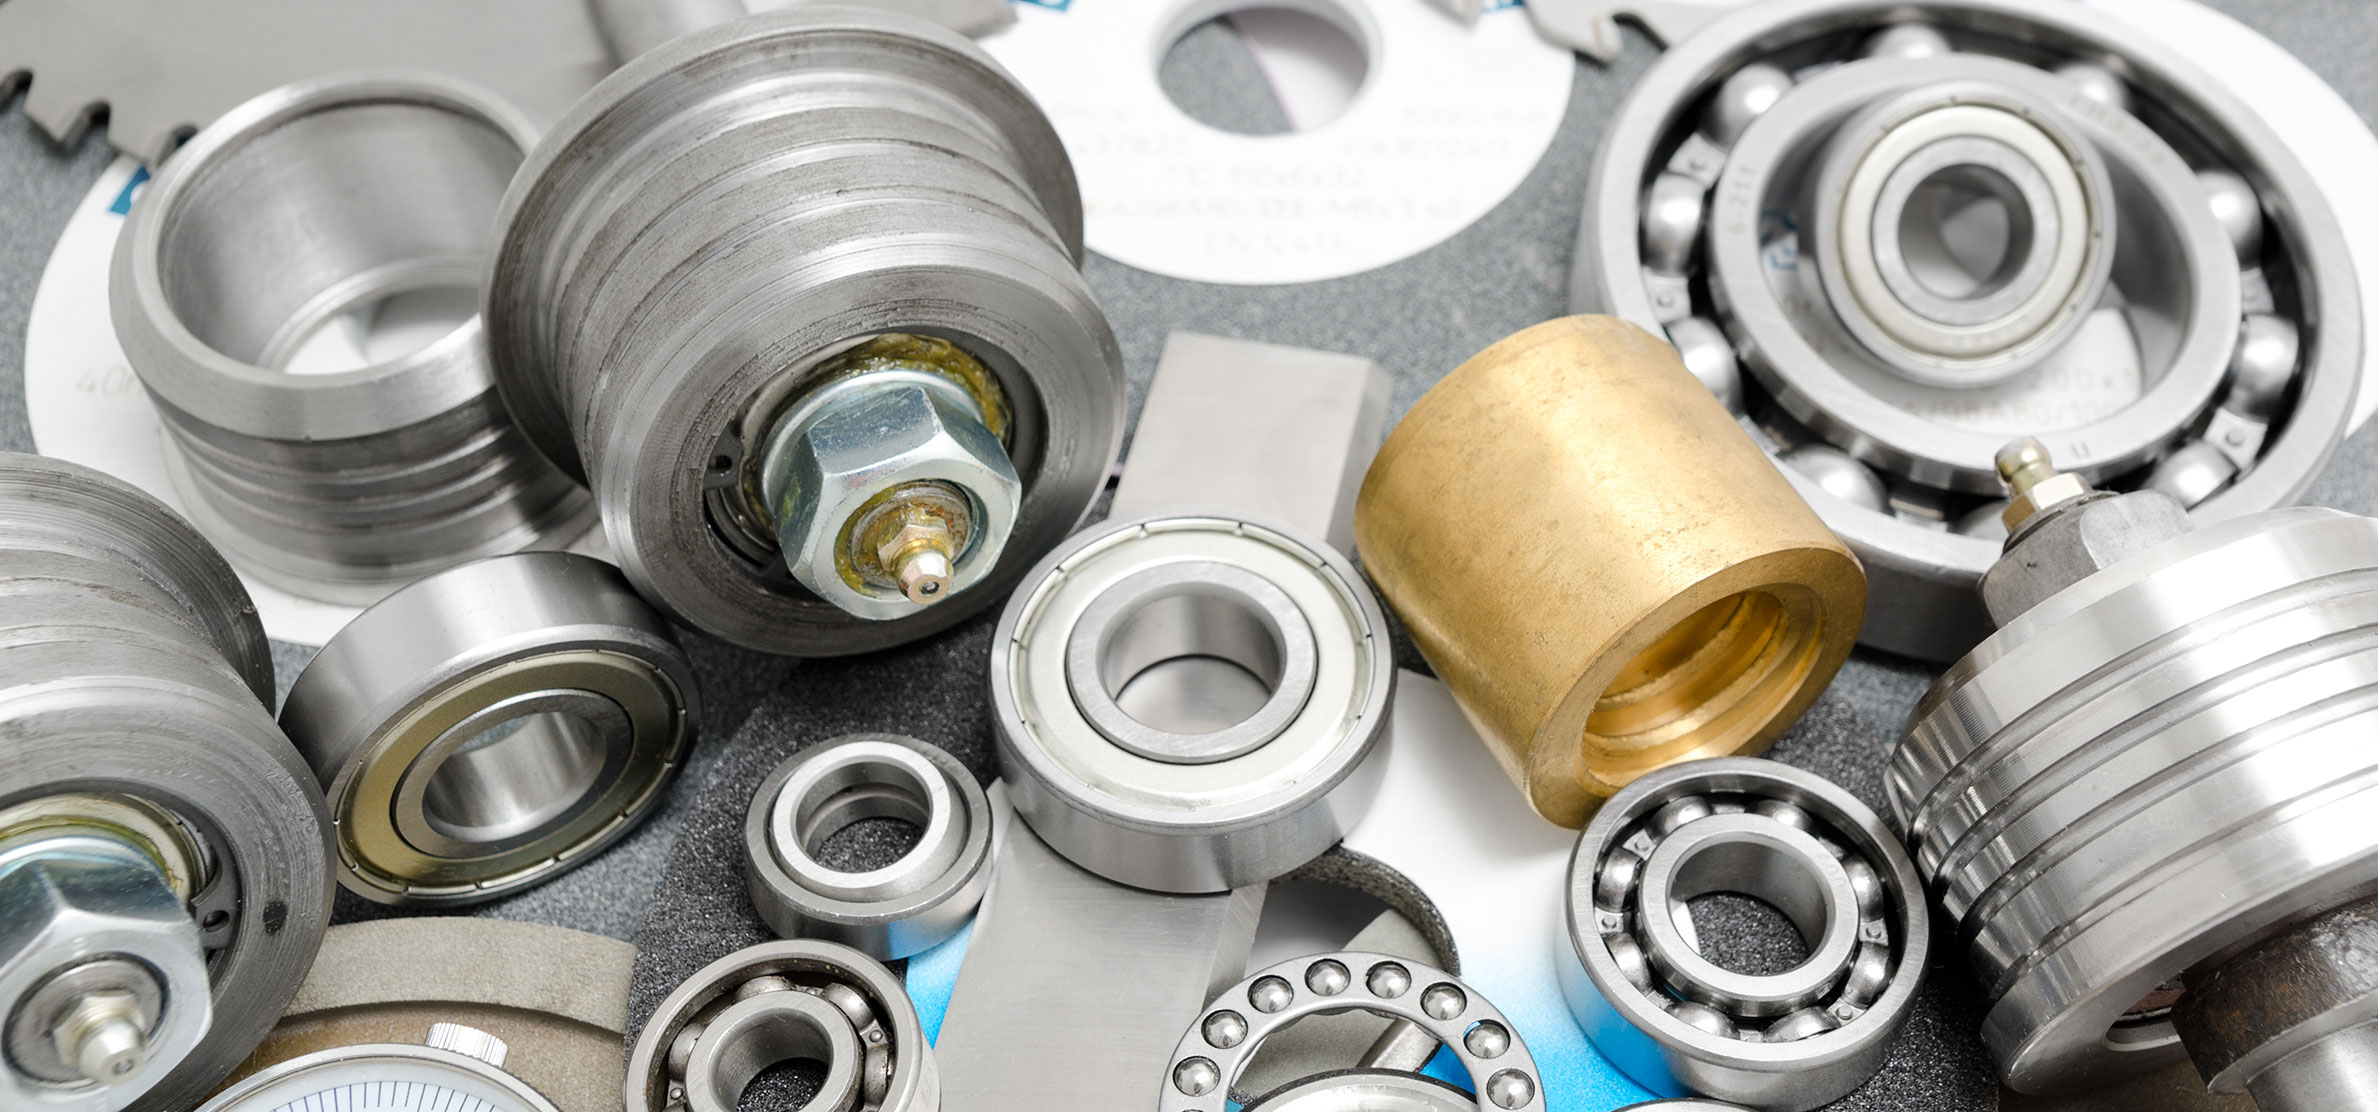 Microsoft Dynamics Integration with Magento for the Automotive Parts Industry